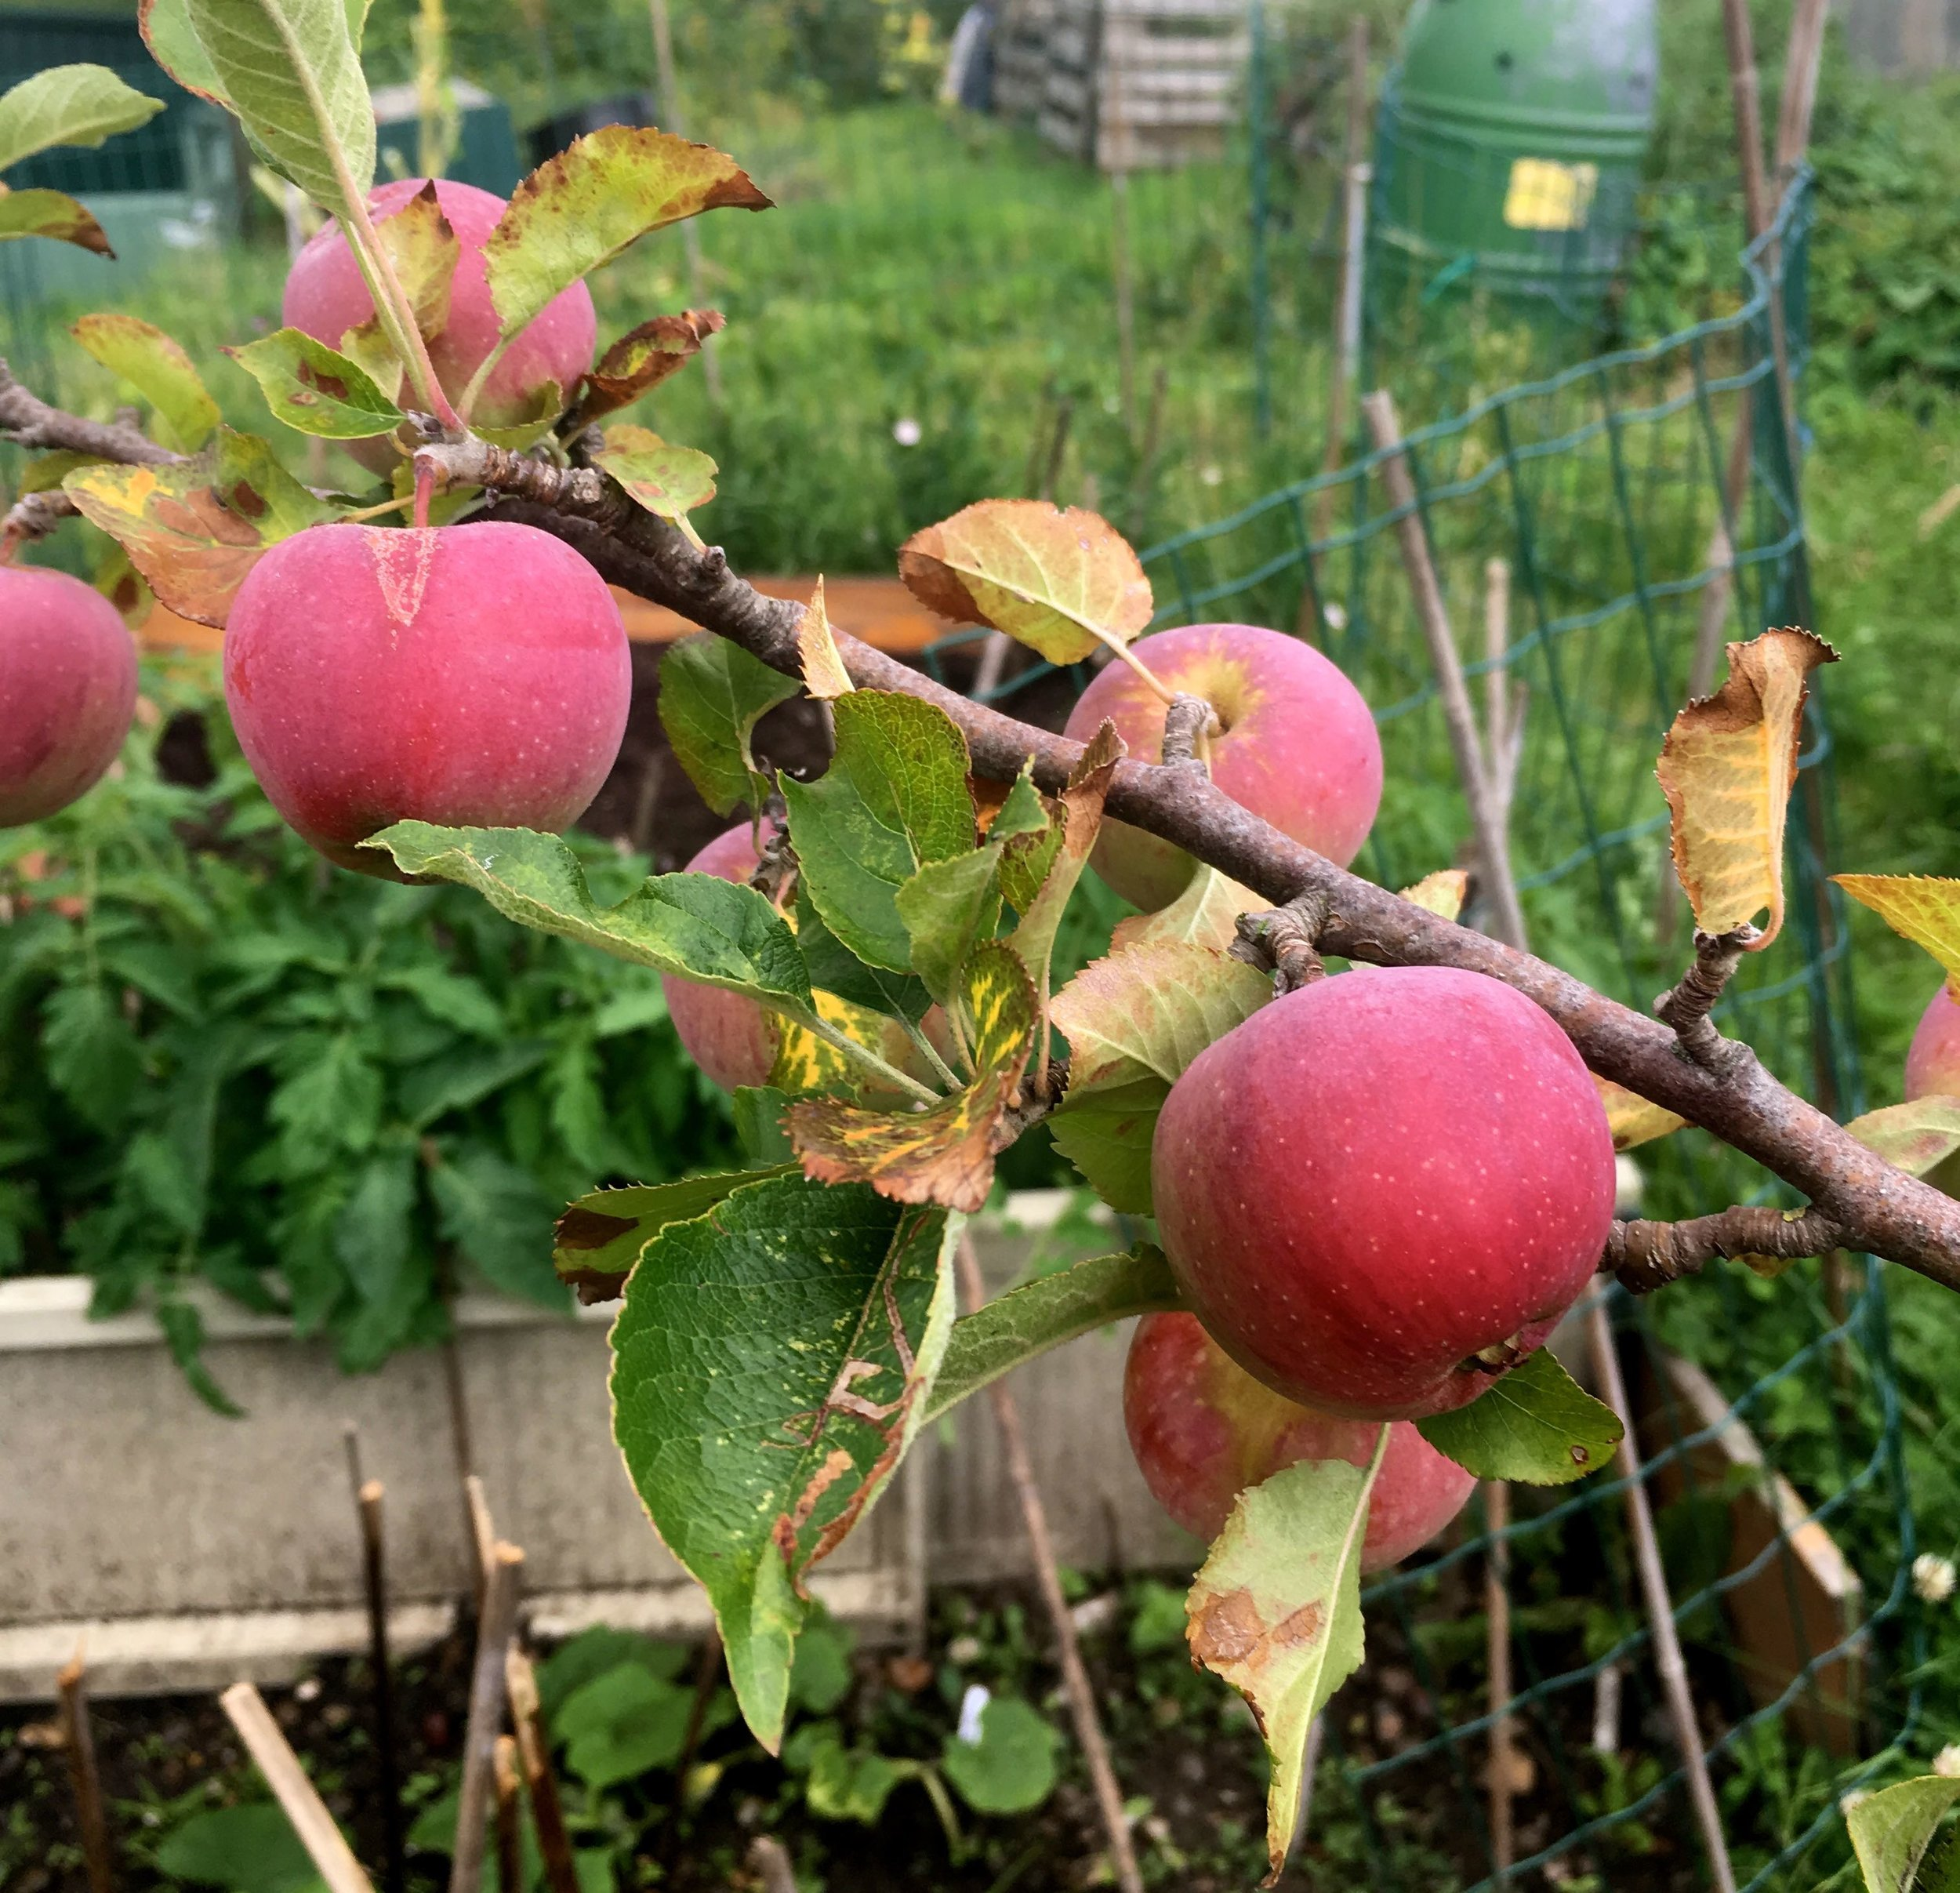 A better crop of apples this year on the plot